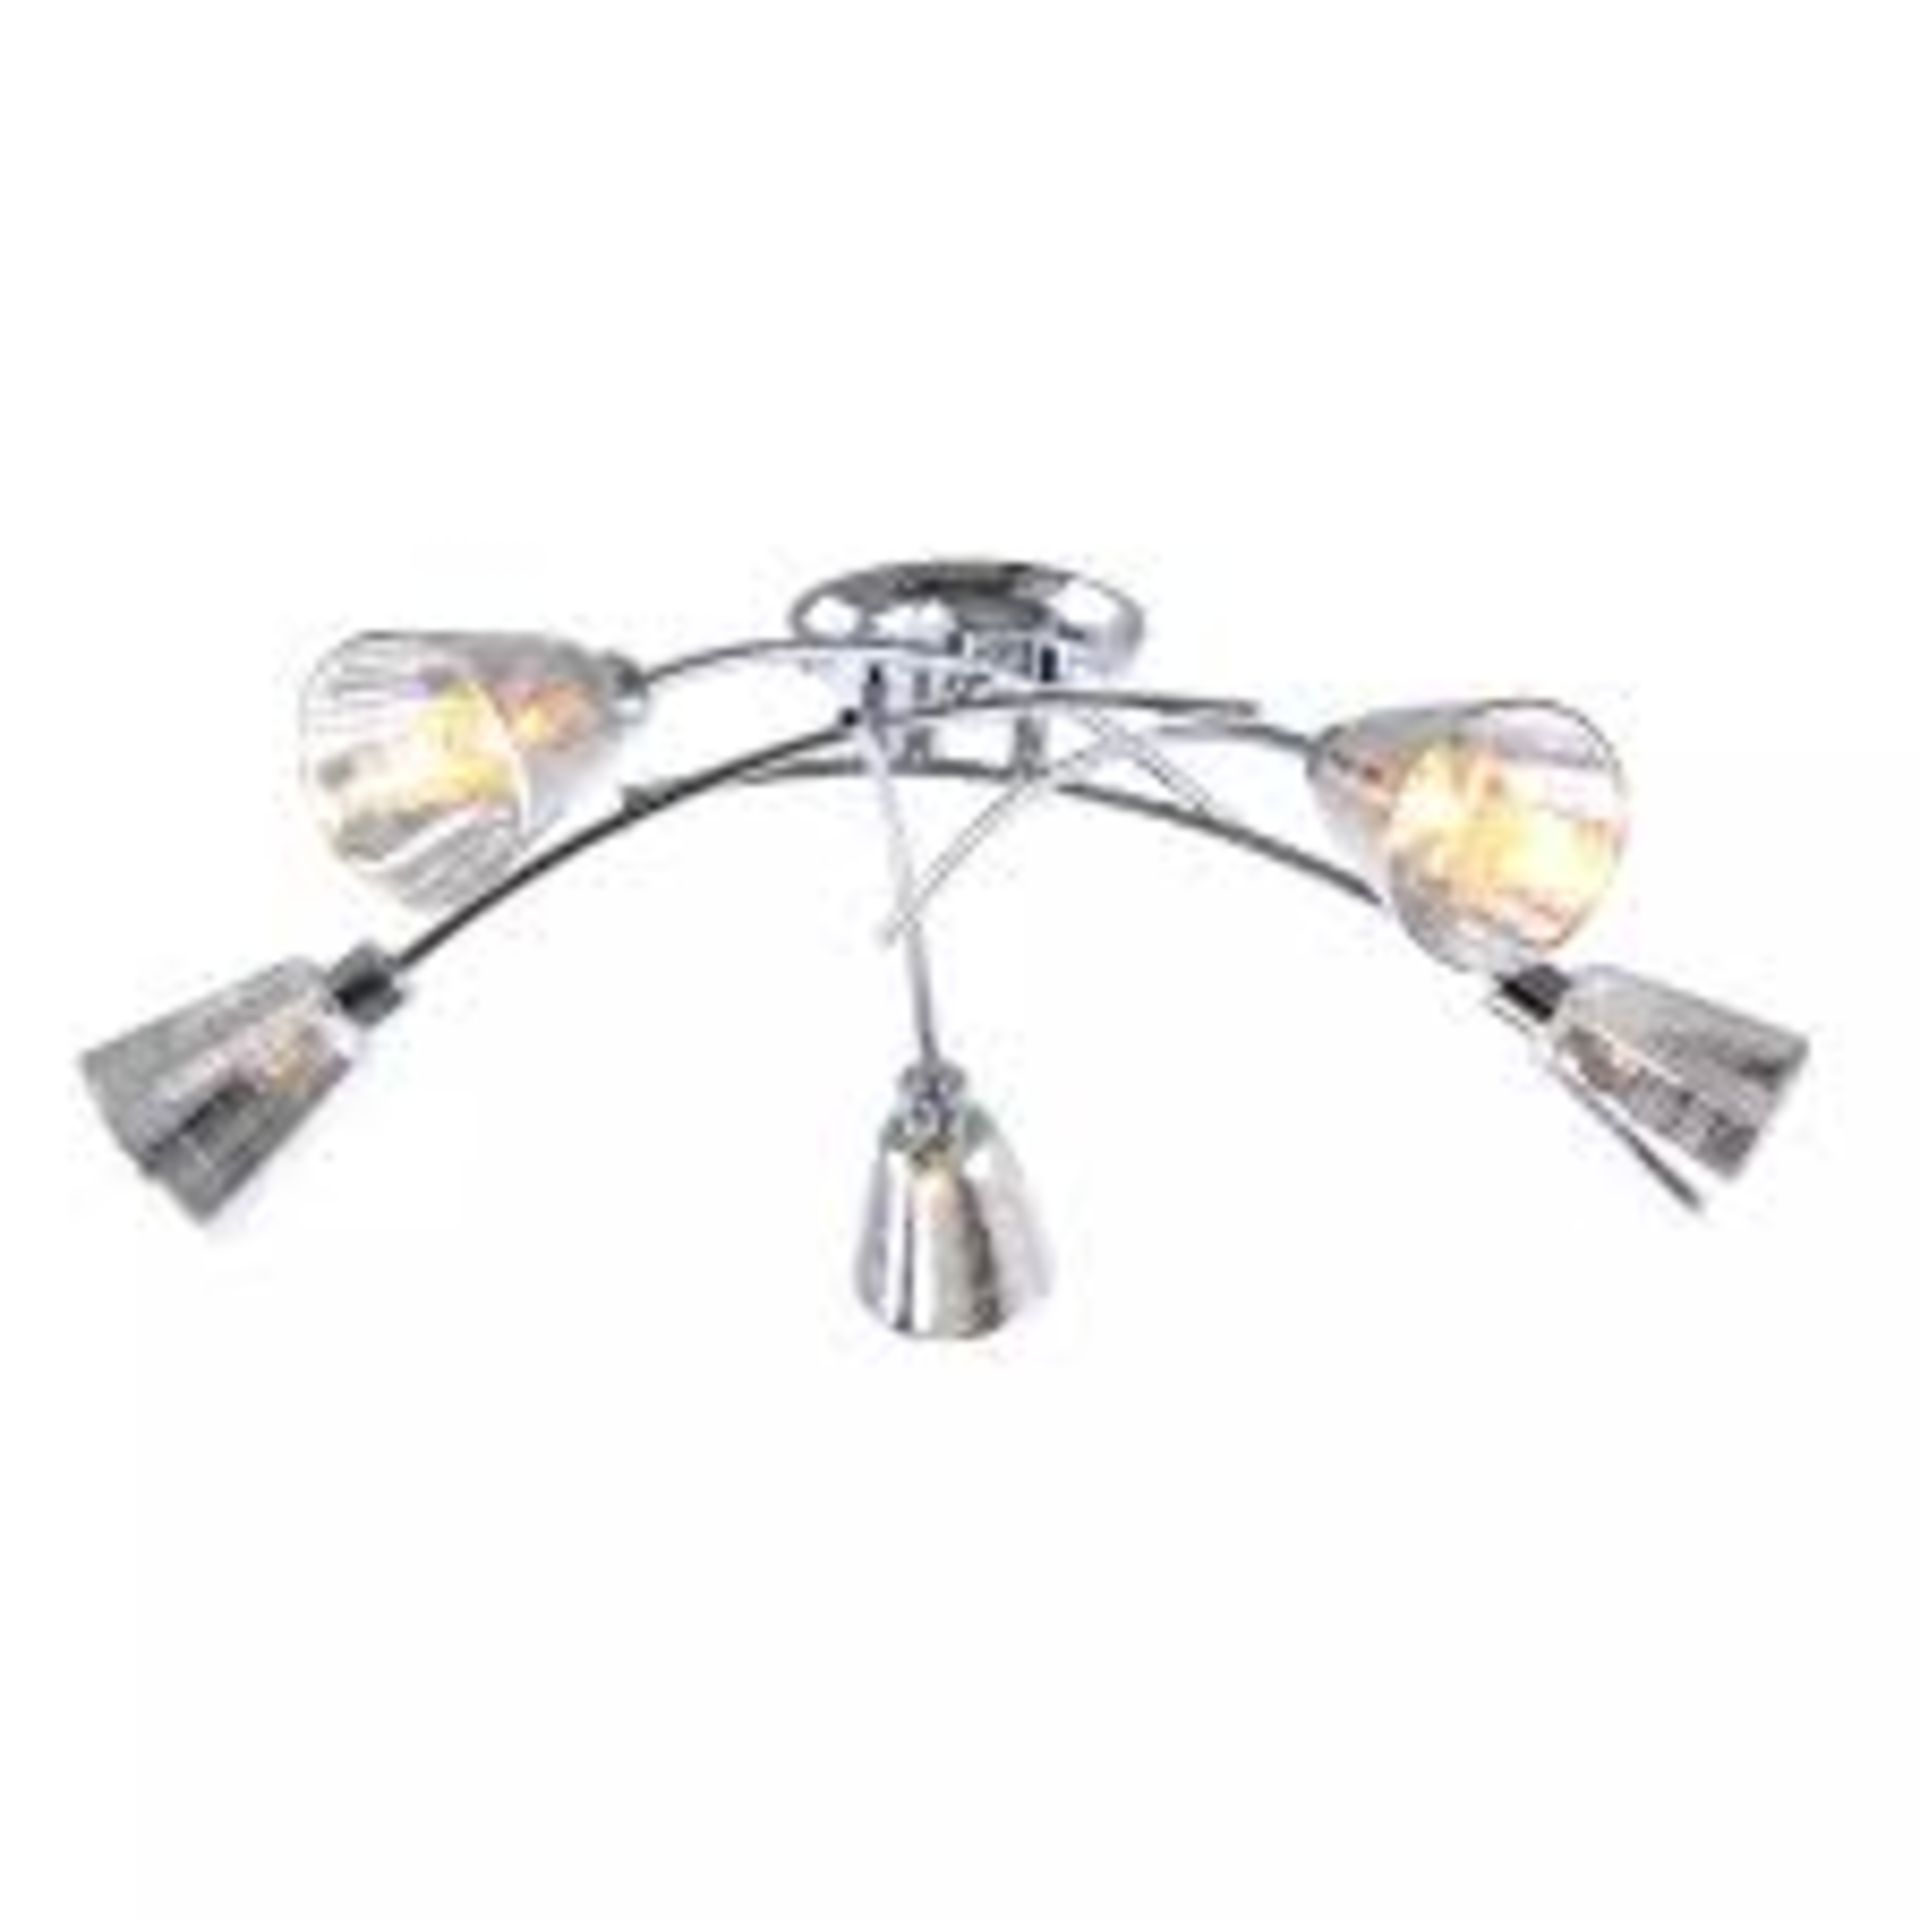 Lot 798 - Boxed Home Collection Louise 3 Lights Stainless Steel & Glass Ceiling Light RRP £80 (Appraisals